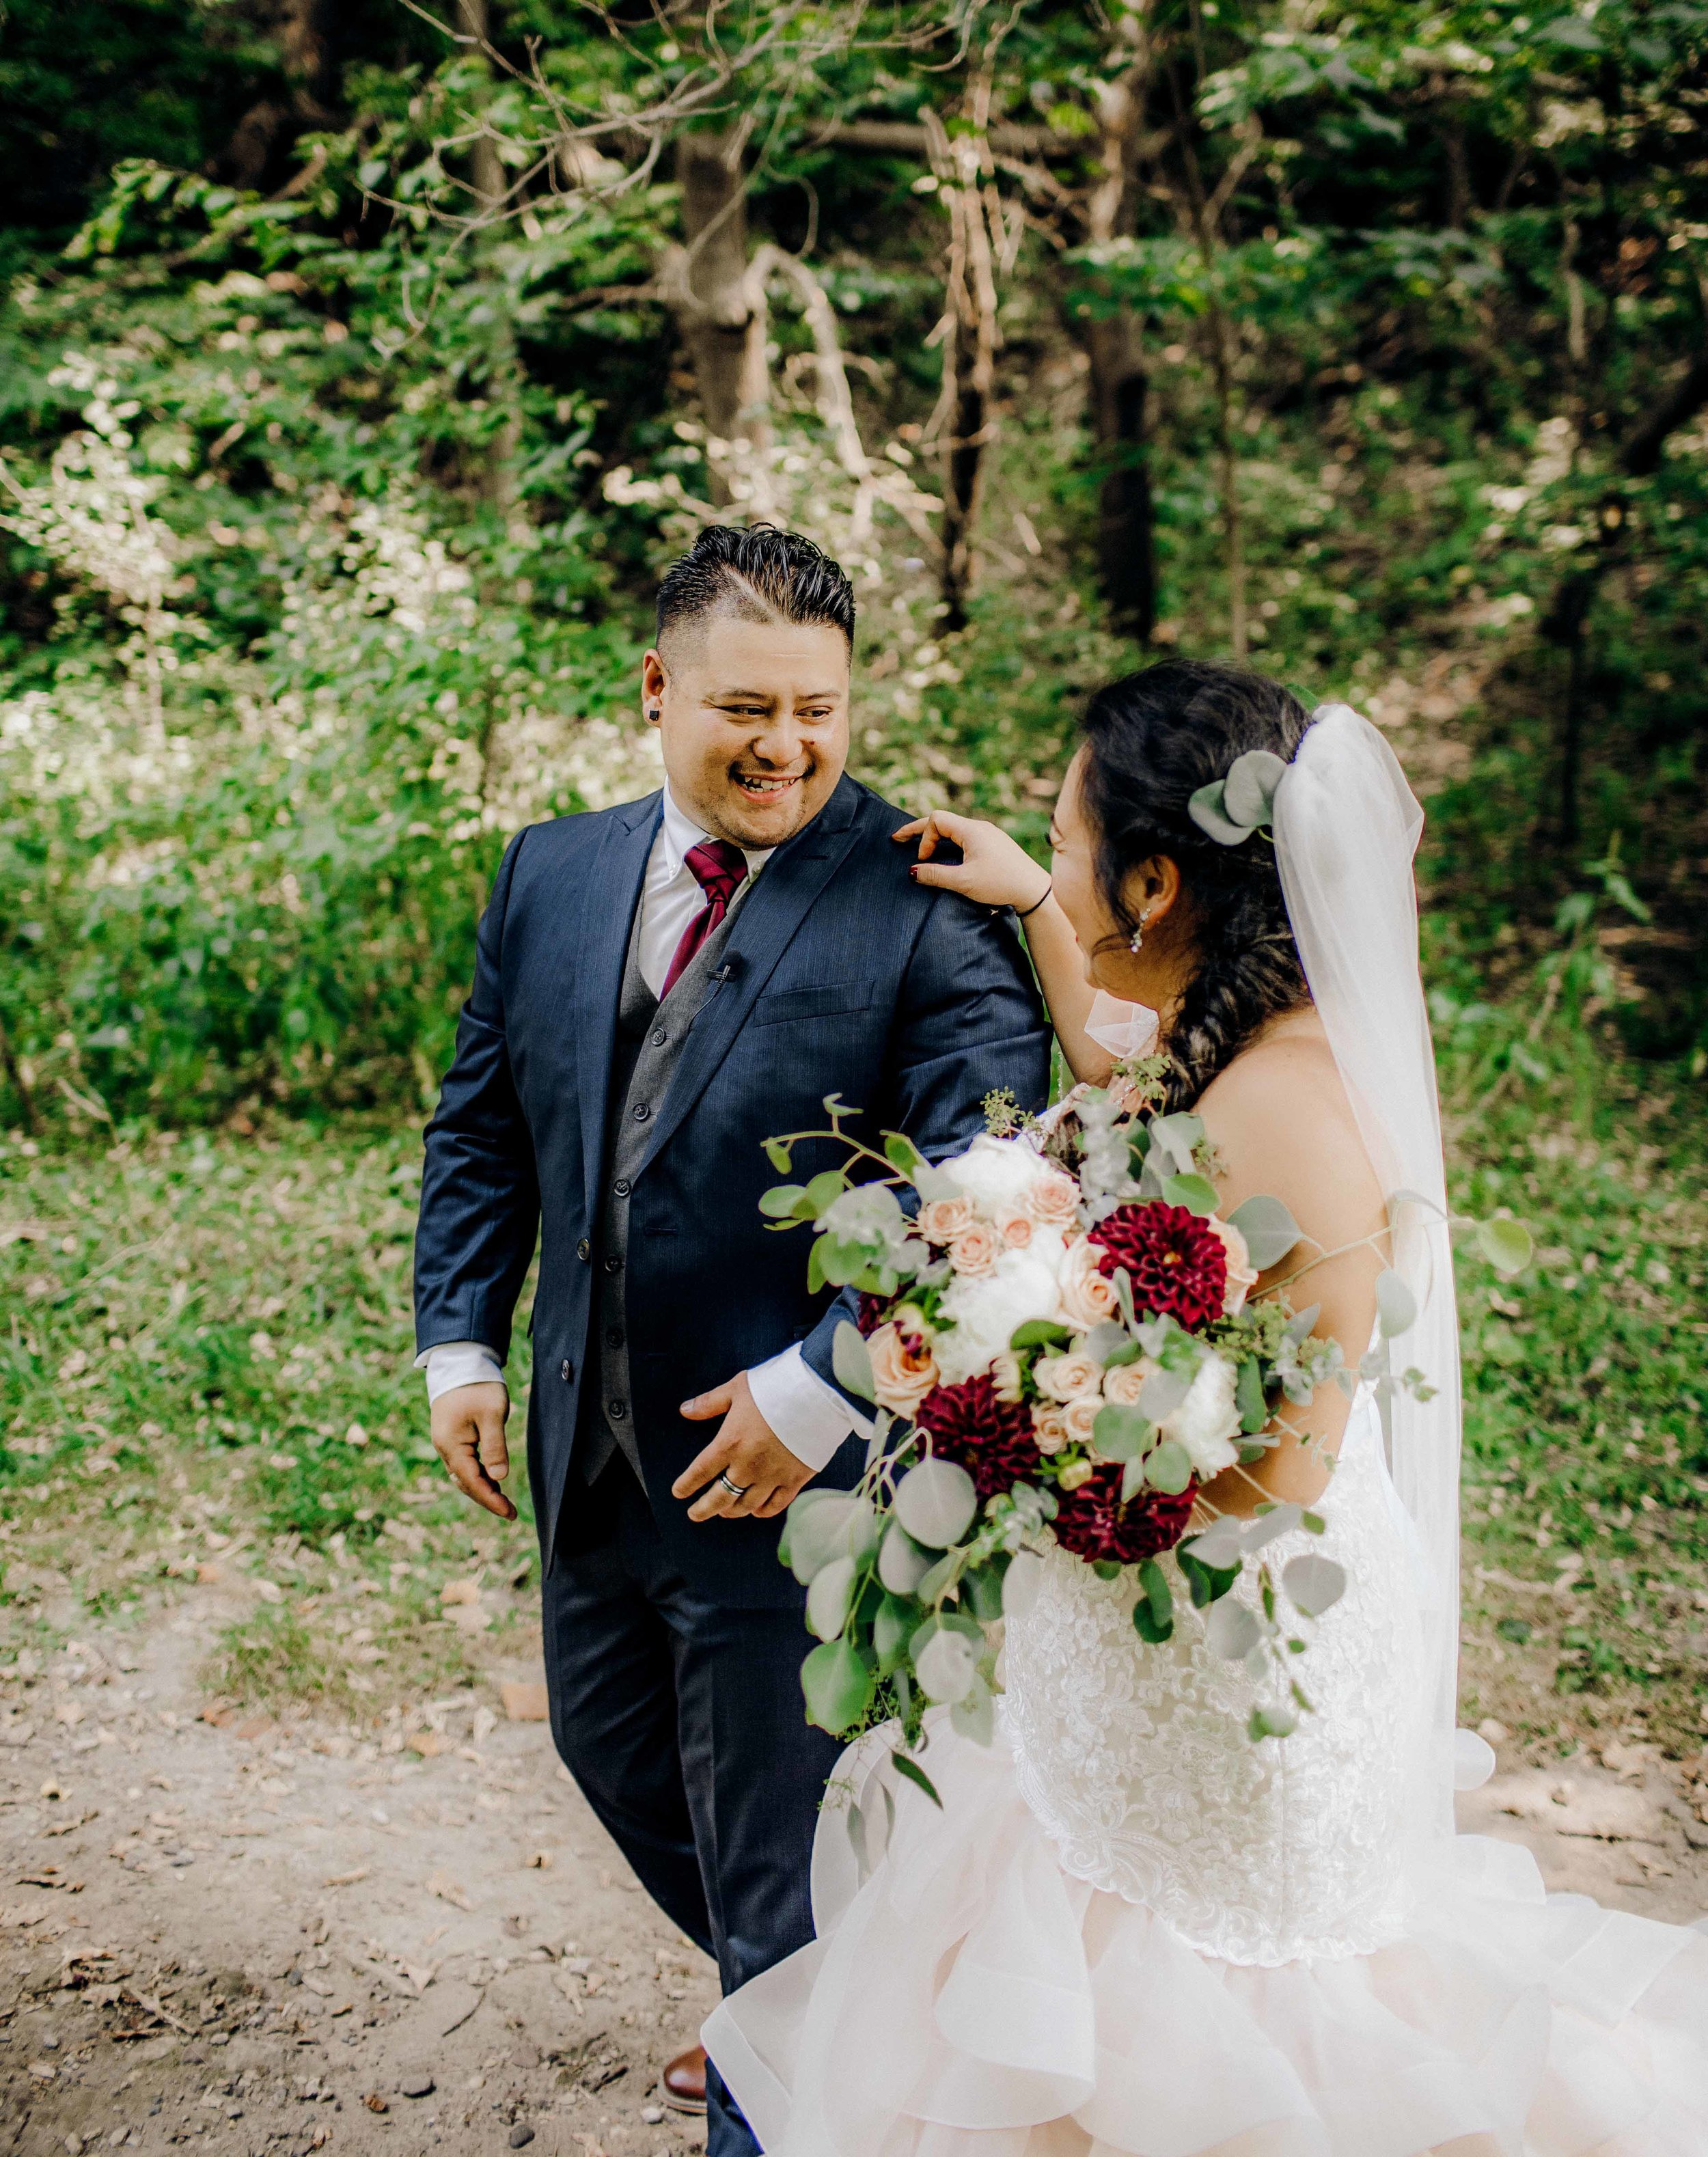 Becky + Kong, Part II, Bride, Groom, and Party-25.jpg